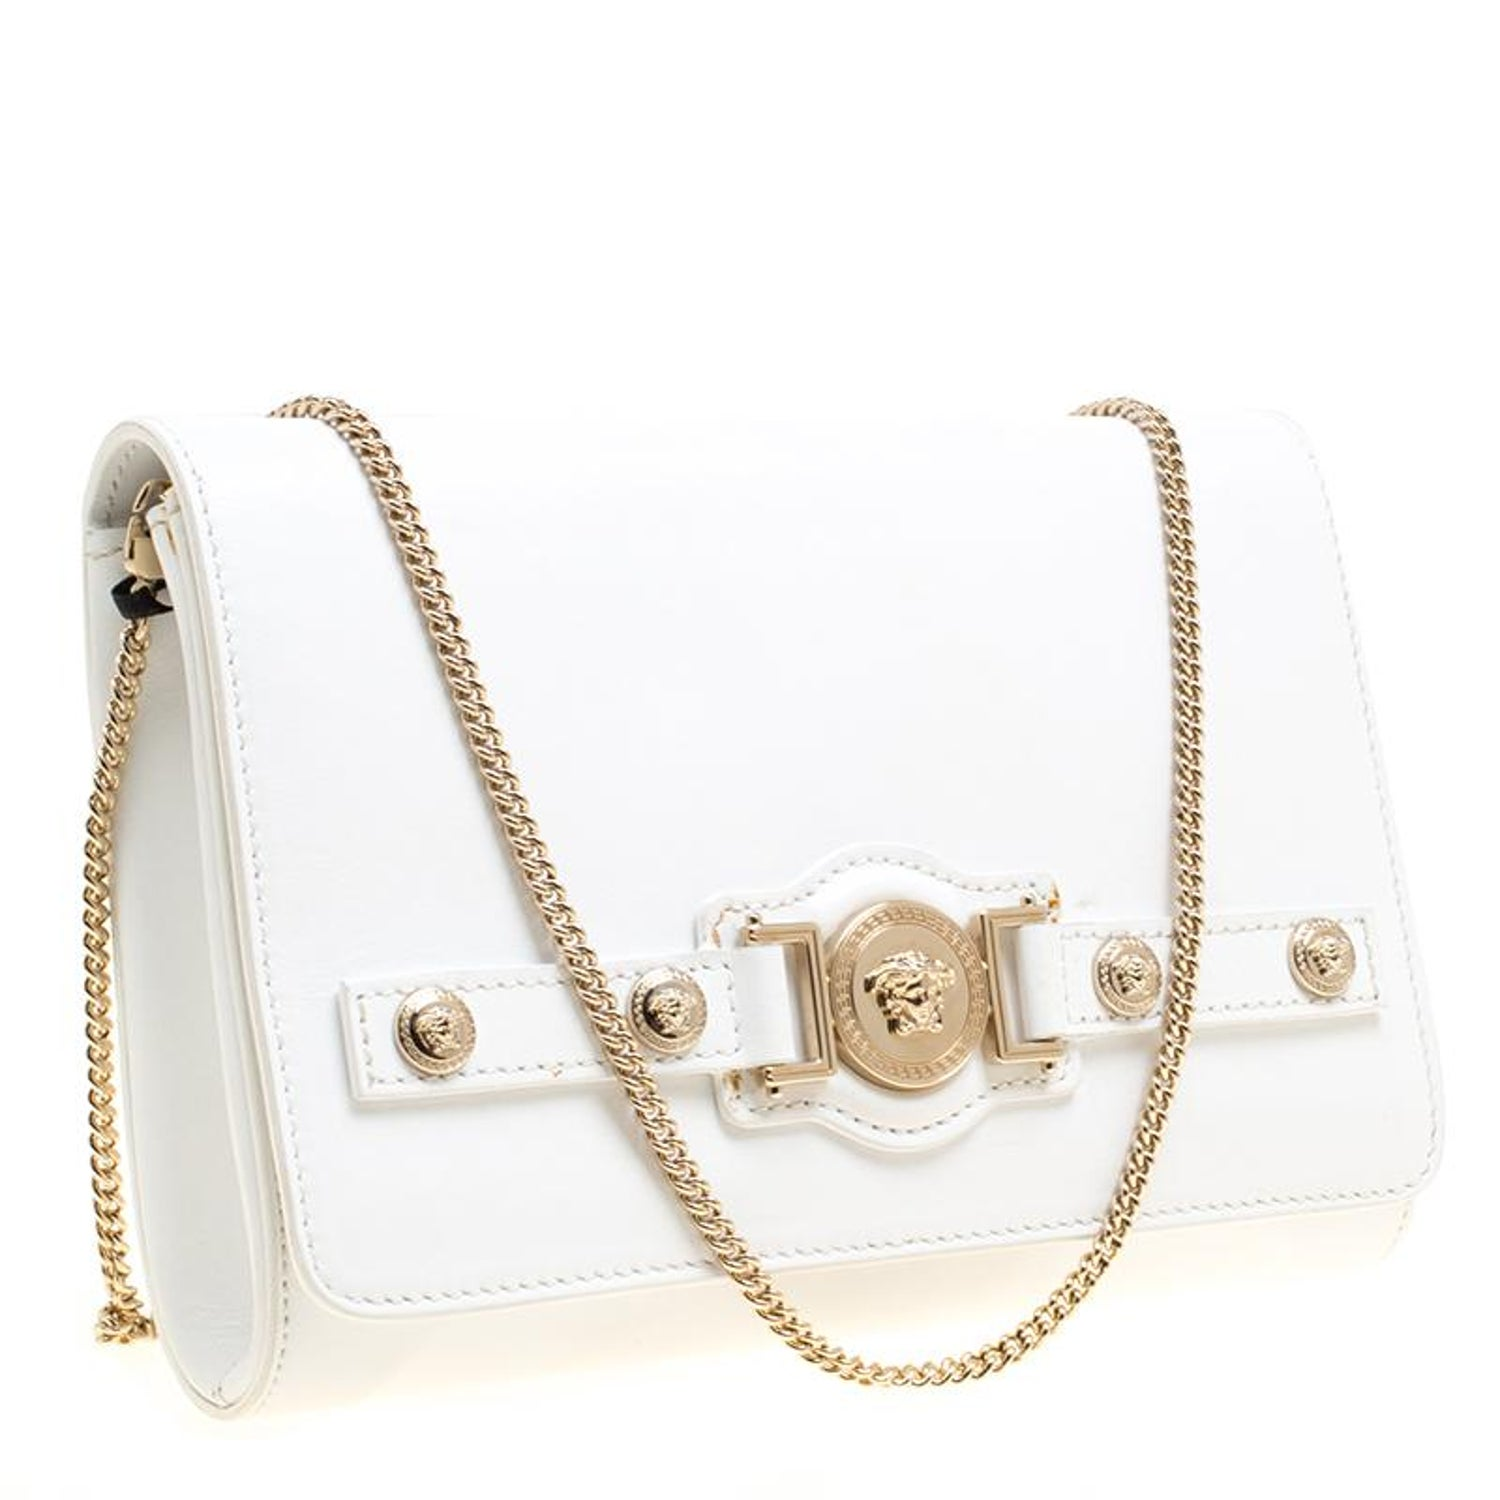 31ac62b713f0 Versace White Leather Chain Clutch Bag at 1stdibs